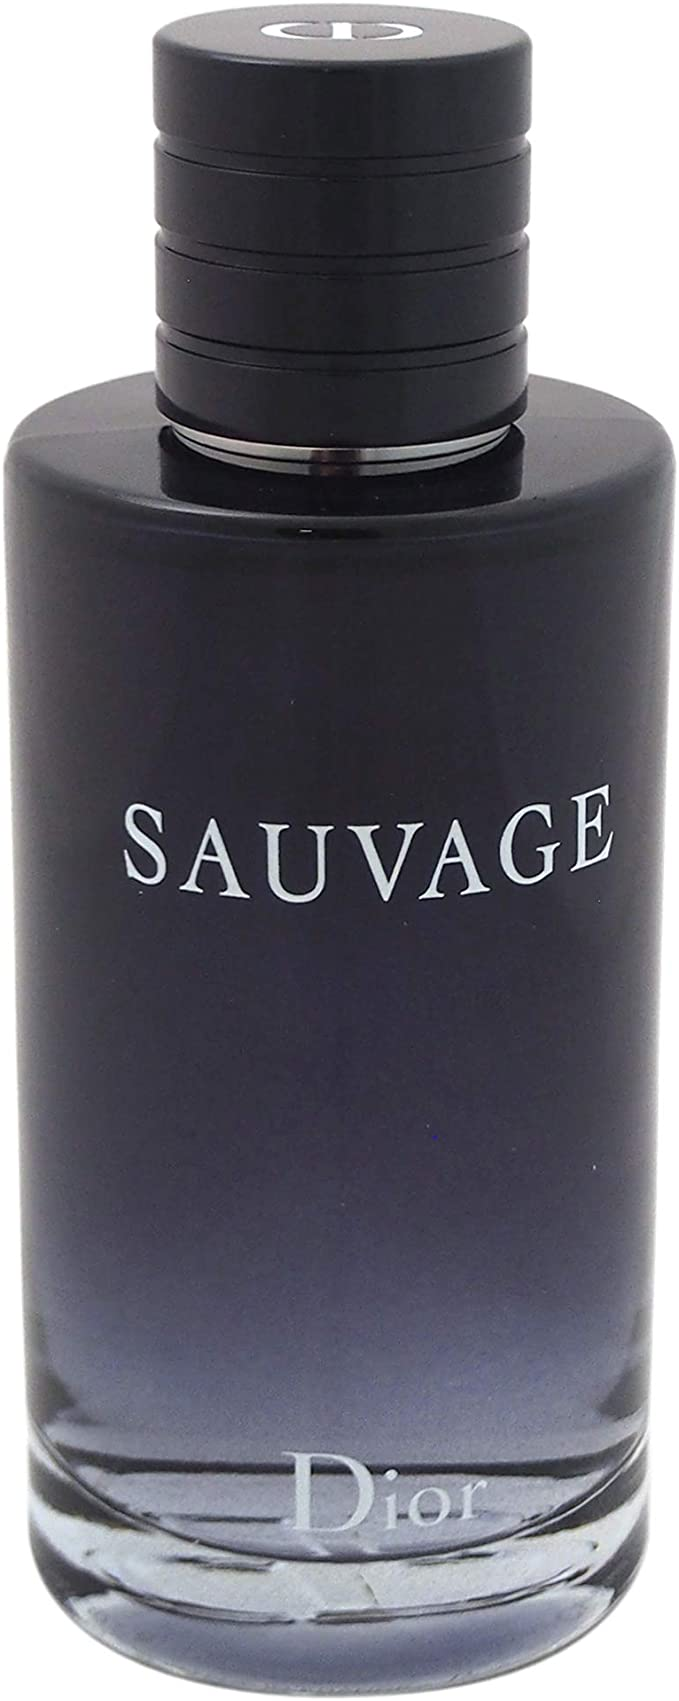 Dior Sauvage Edt Vapo 200 Ml: Amazon.es: Belleza